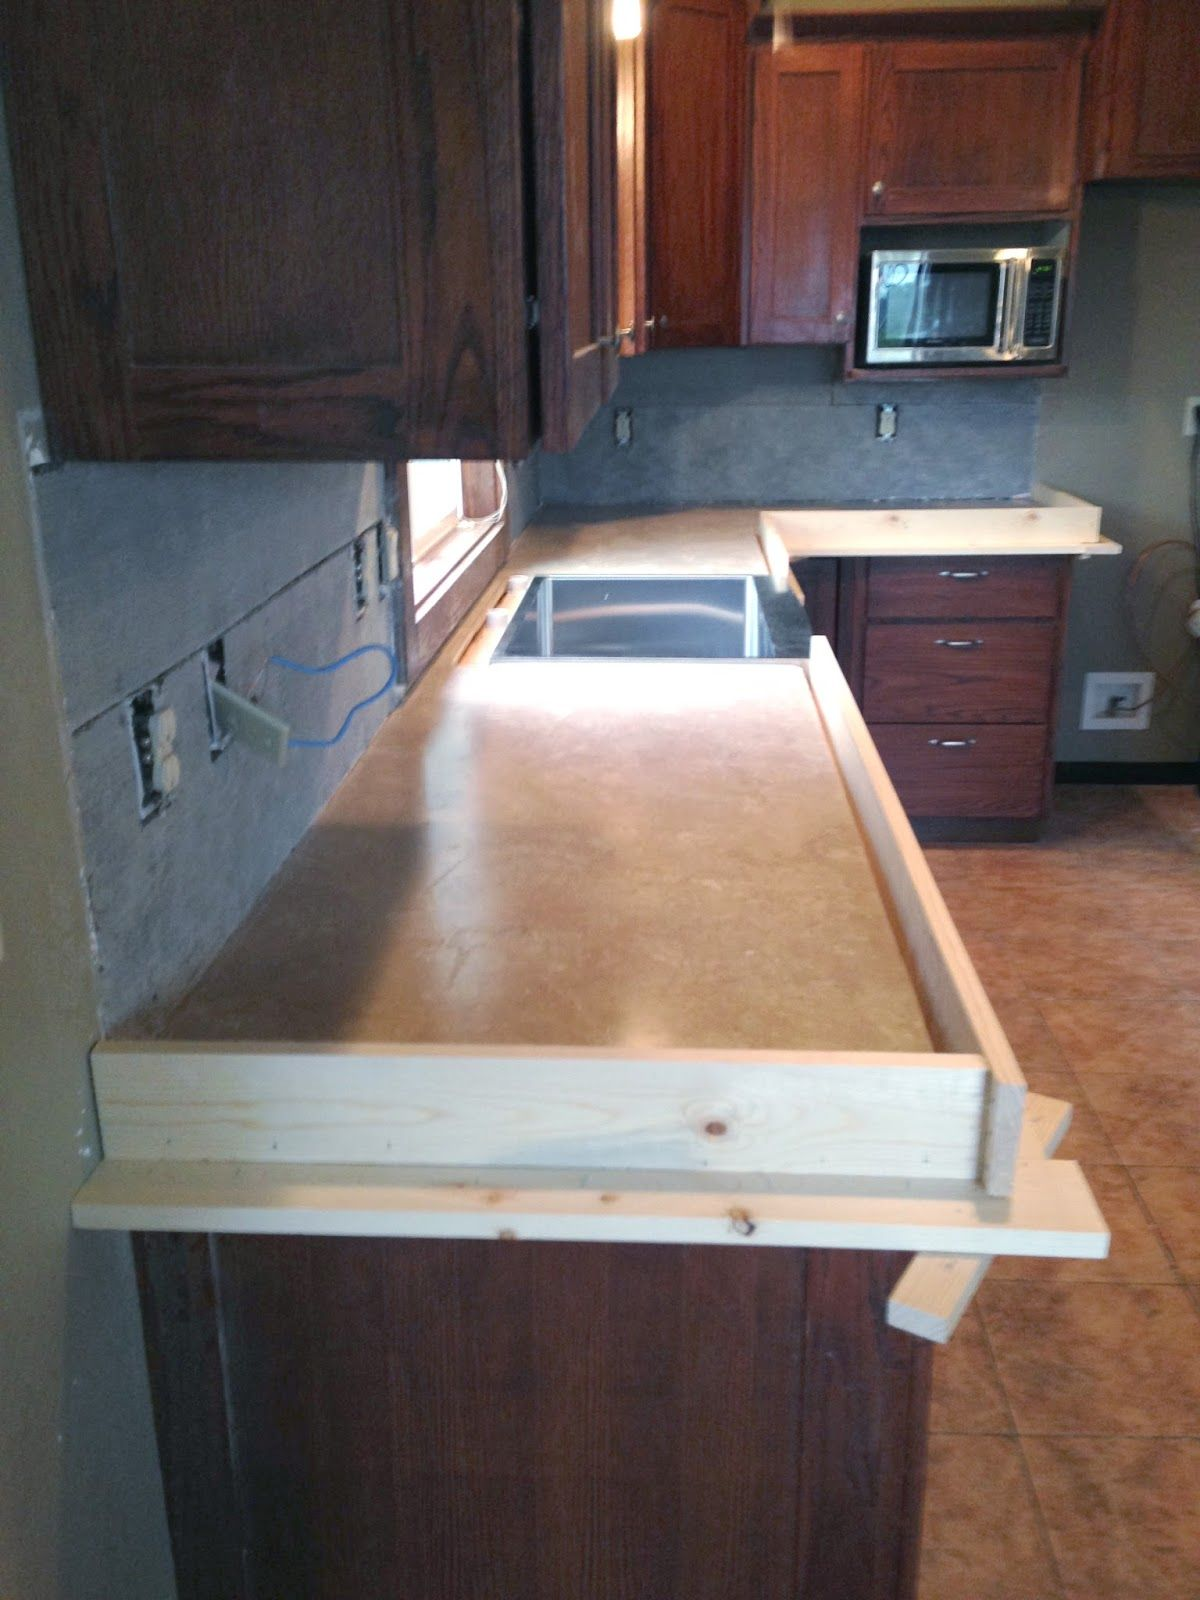 Diy Concrete Counters Poured Over Laminate Diy Countertops Diy Kitchen Countertops Diy Concrete Countertops